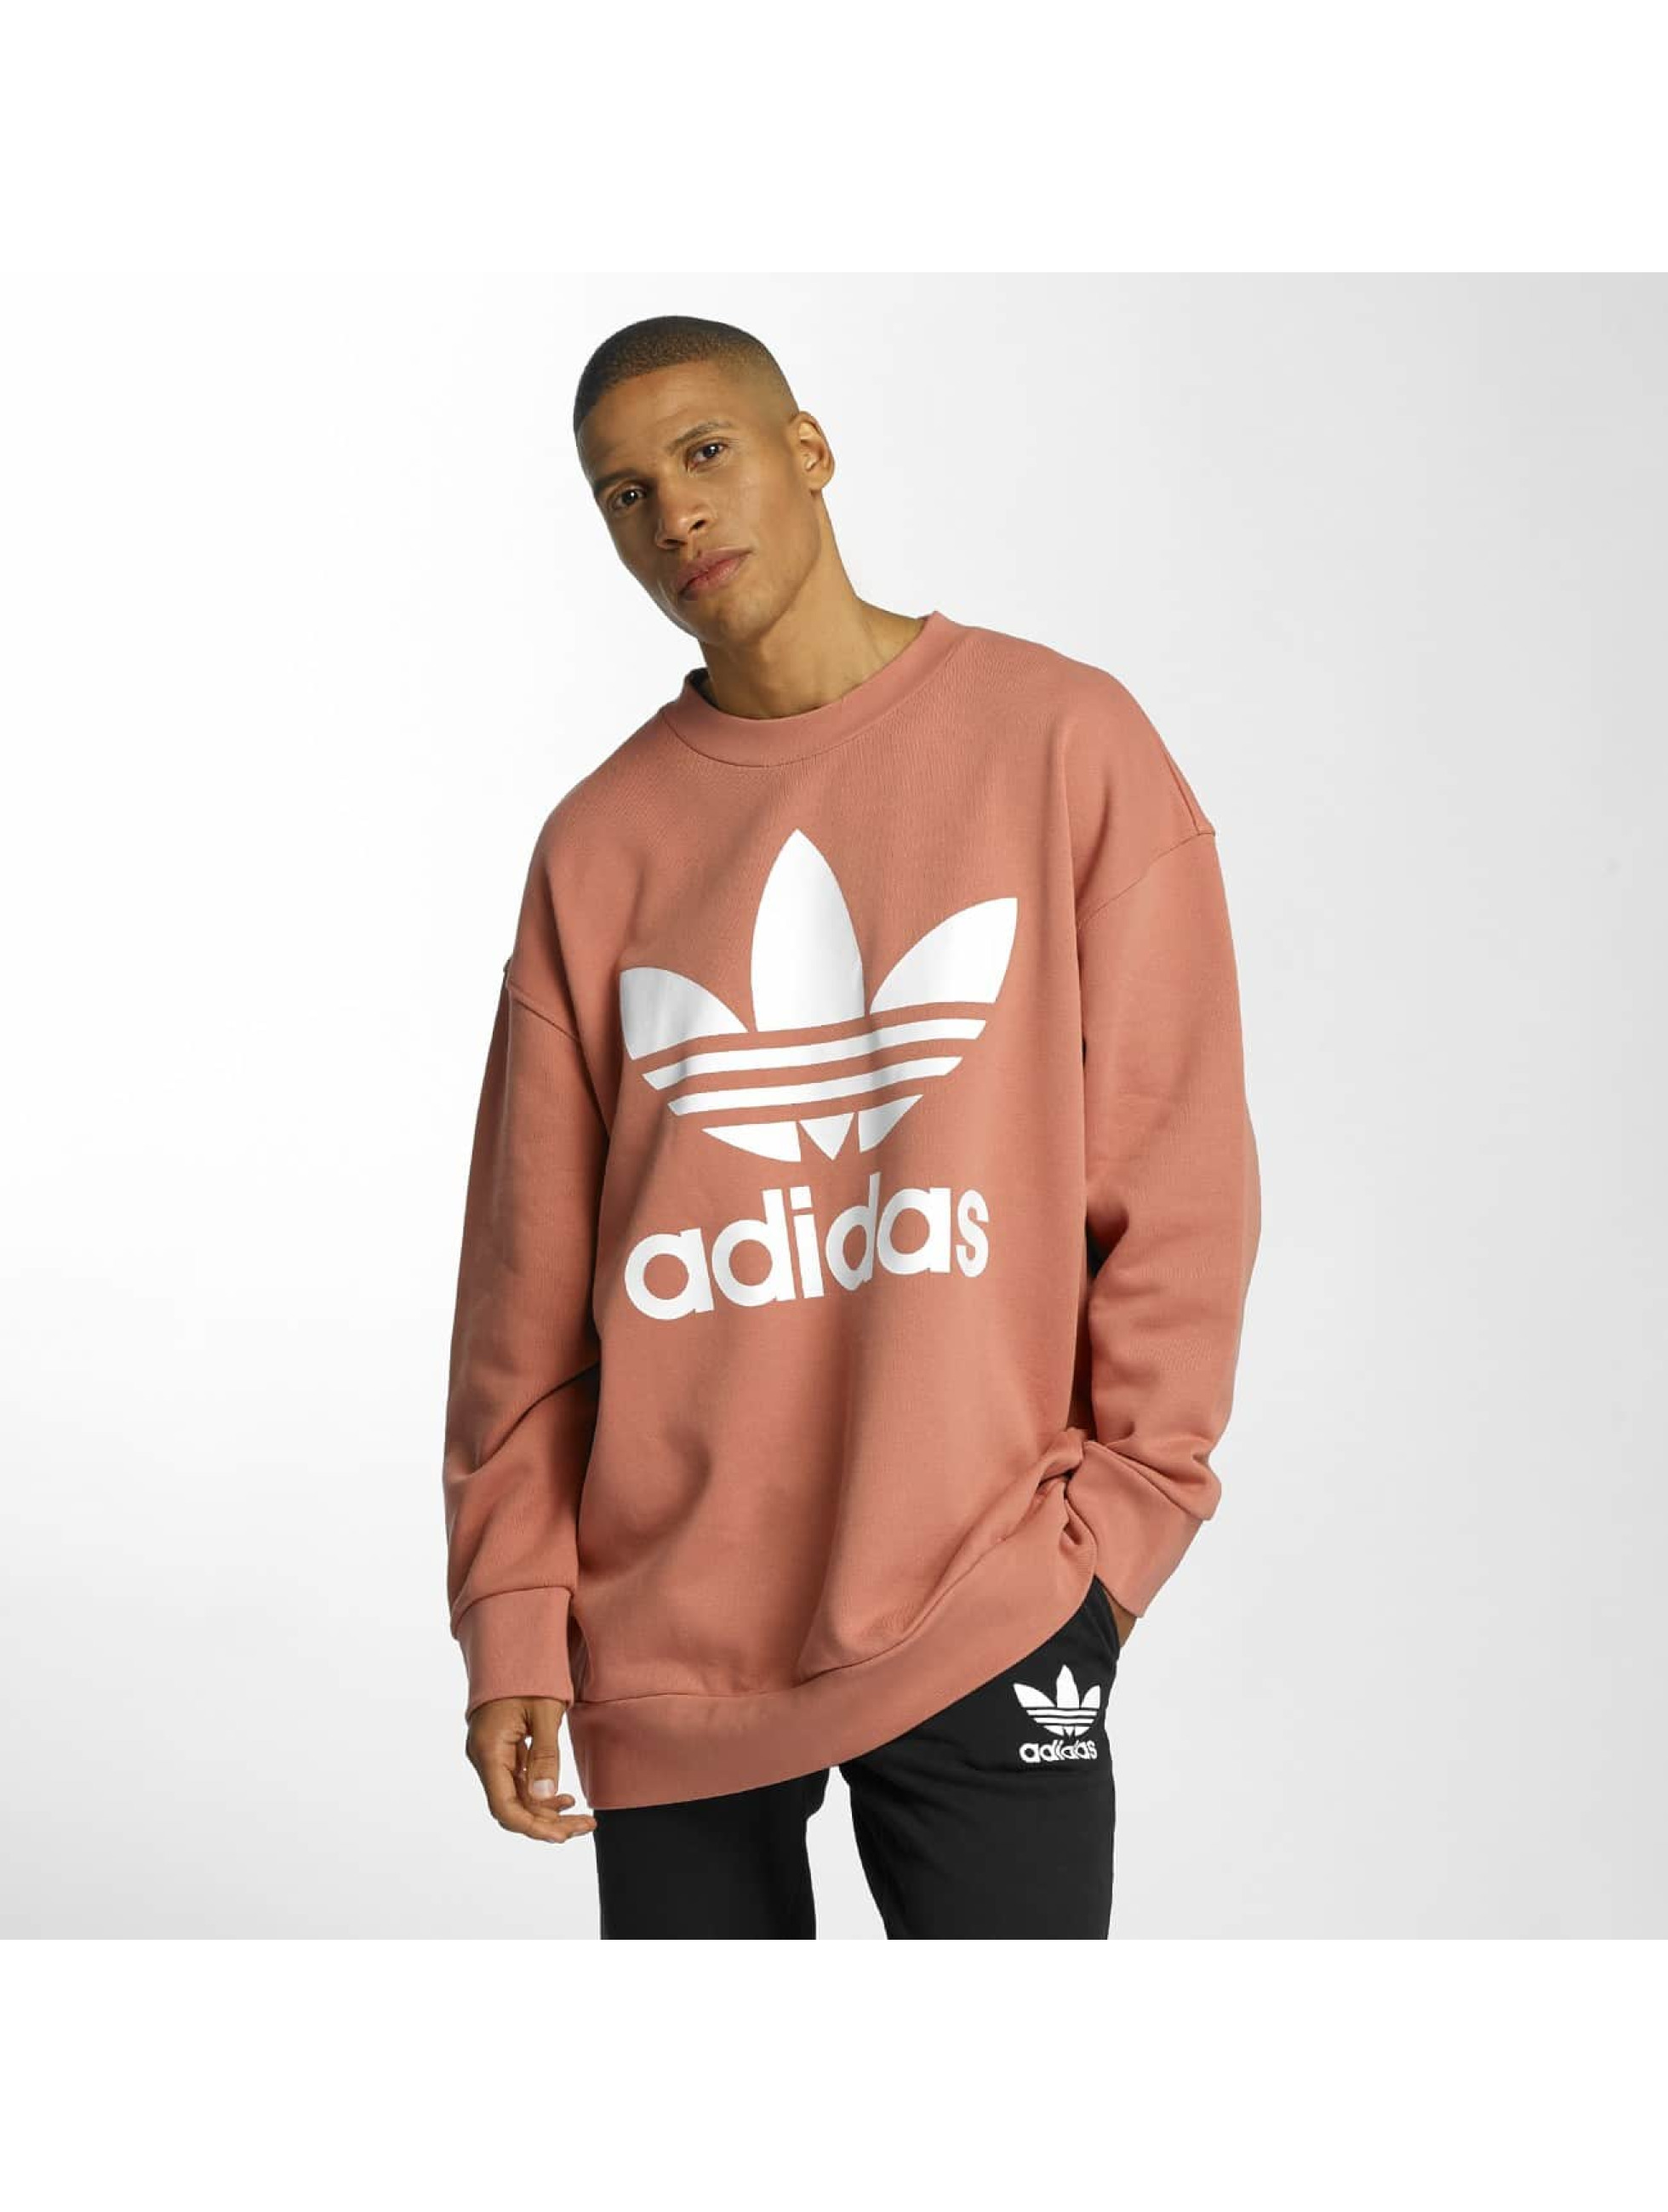 adidas Gensre ADC F rosa